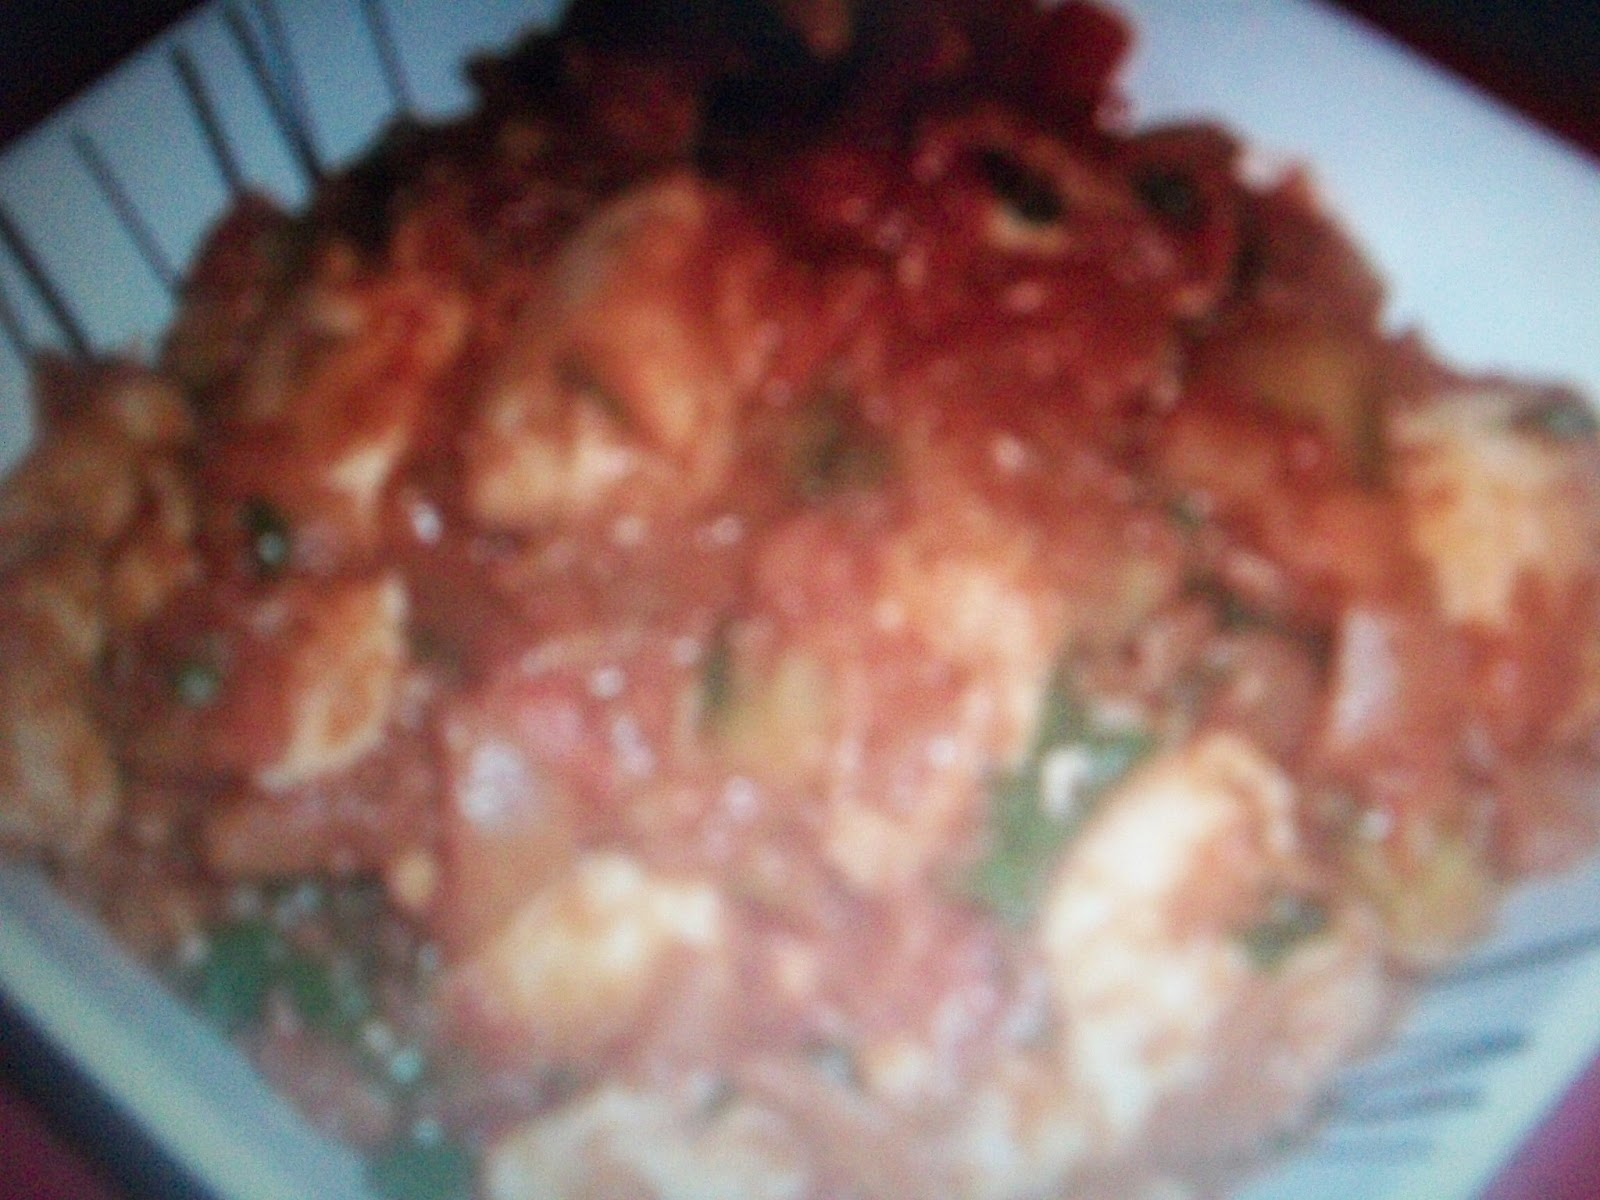 http://lunchrecipe.blogspot.in/2013/06/tomato-chaat-recipe-how-to-make-banarsi.html